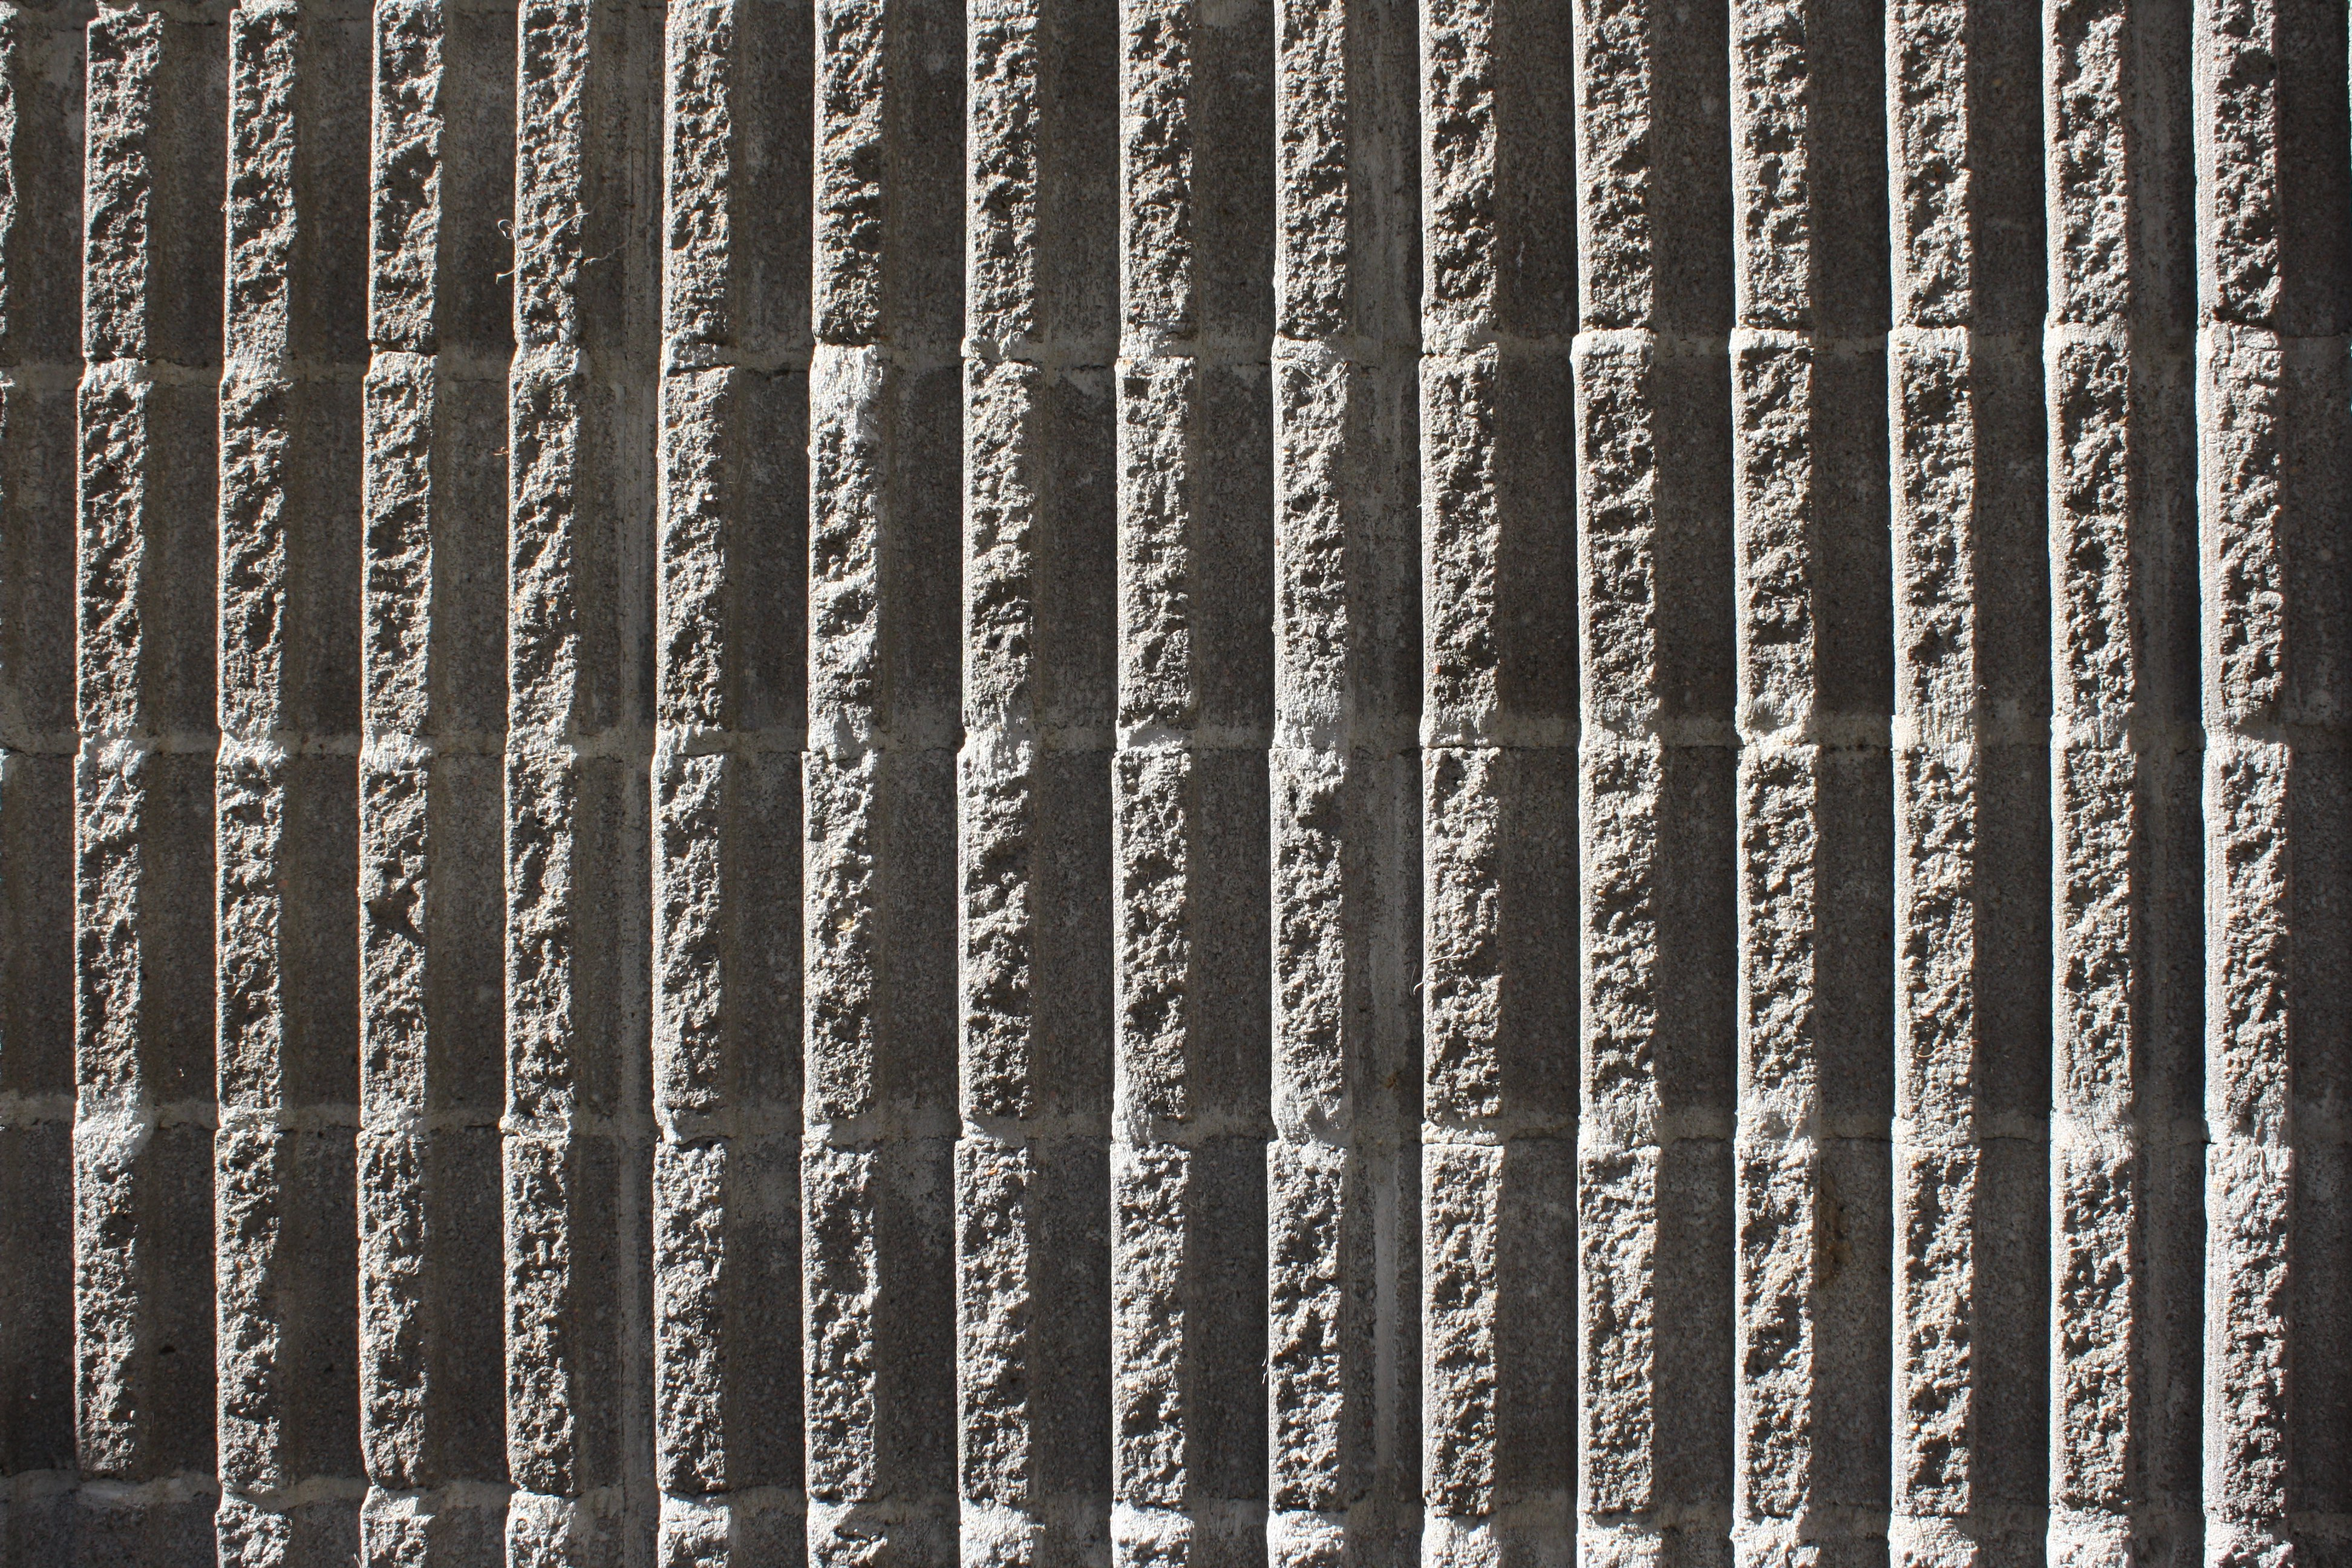 Fluted Concrete Block Wall Texture With Vertical Ridges